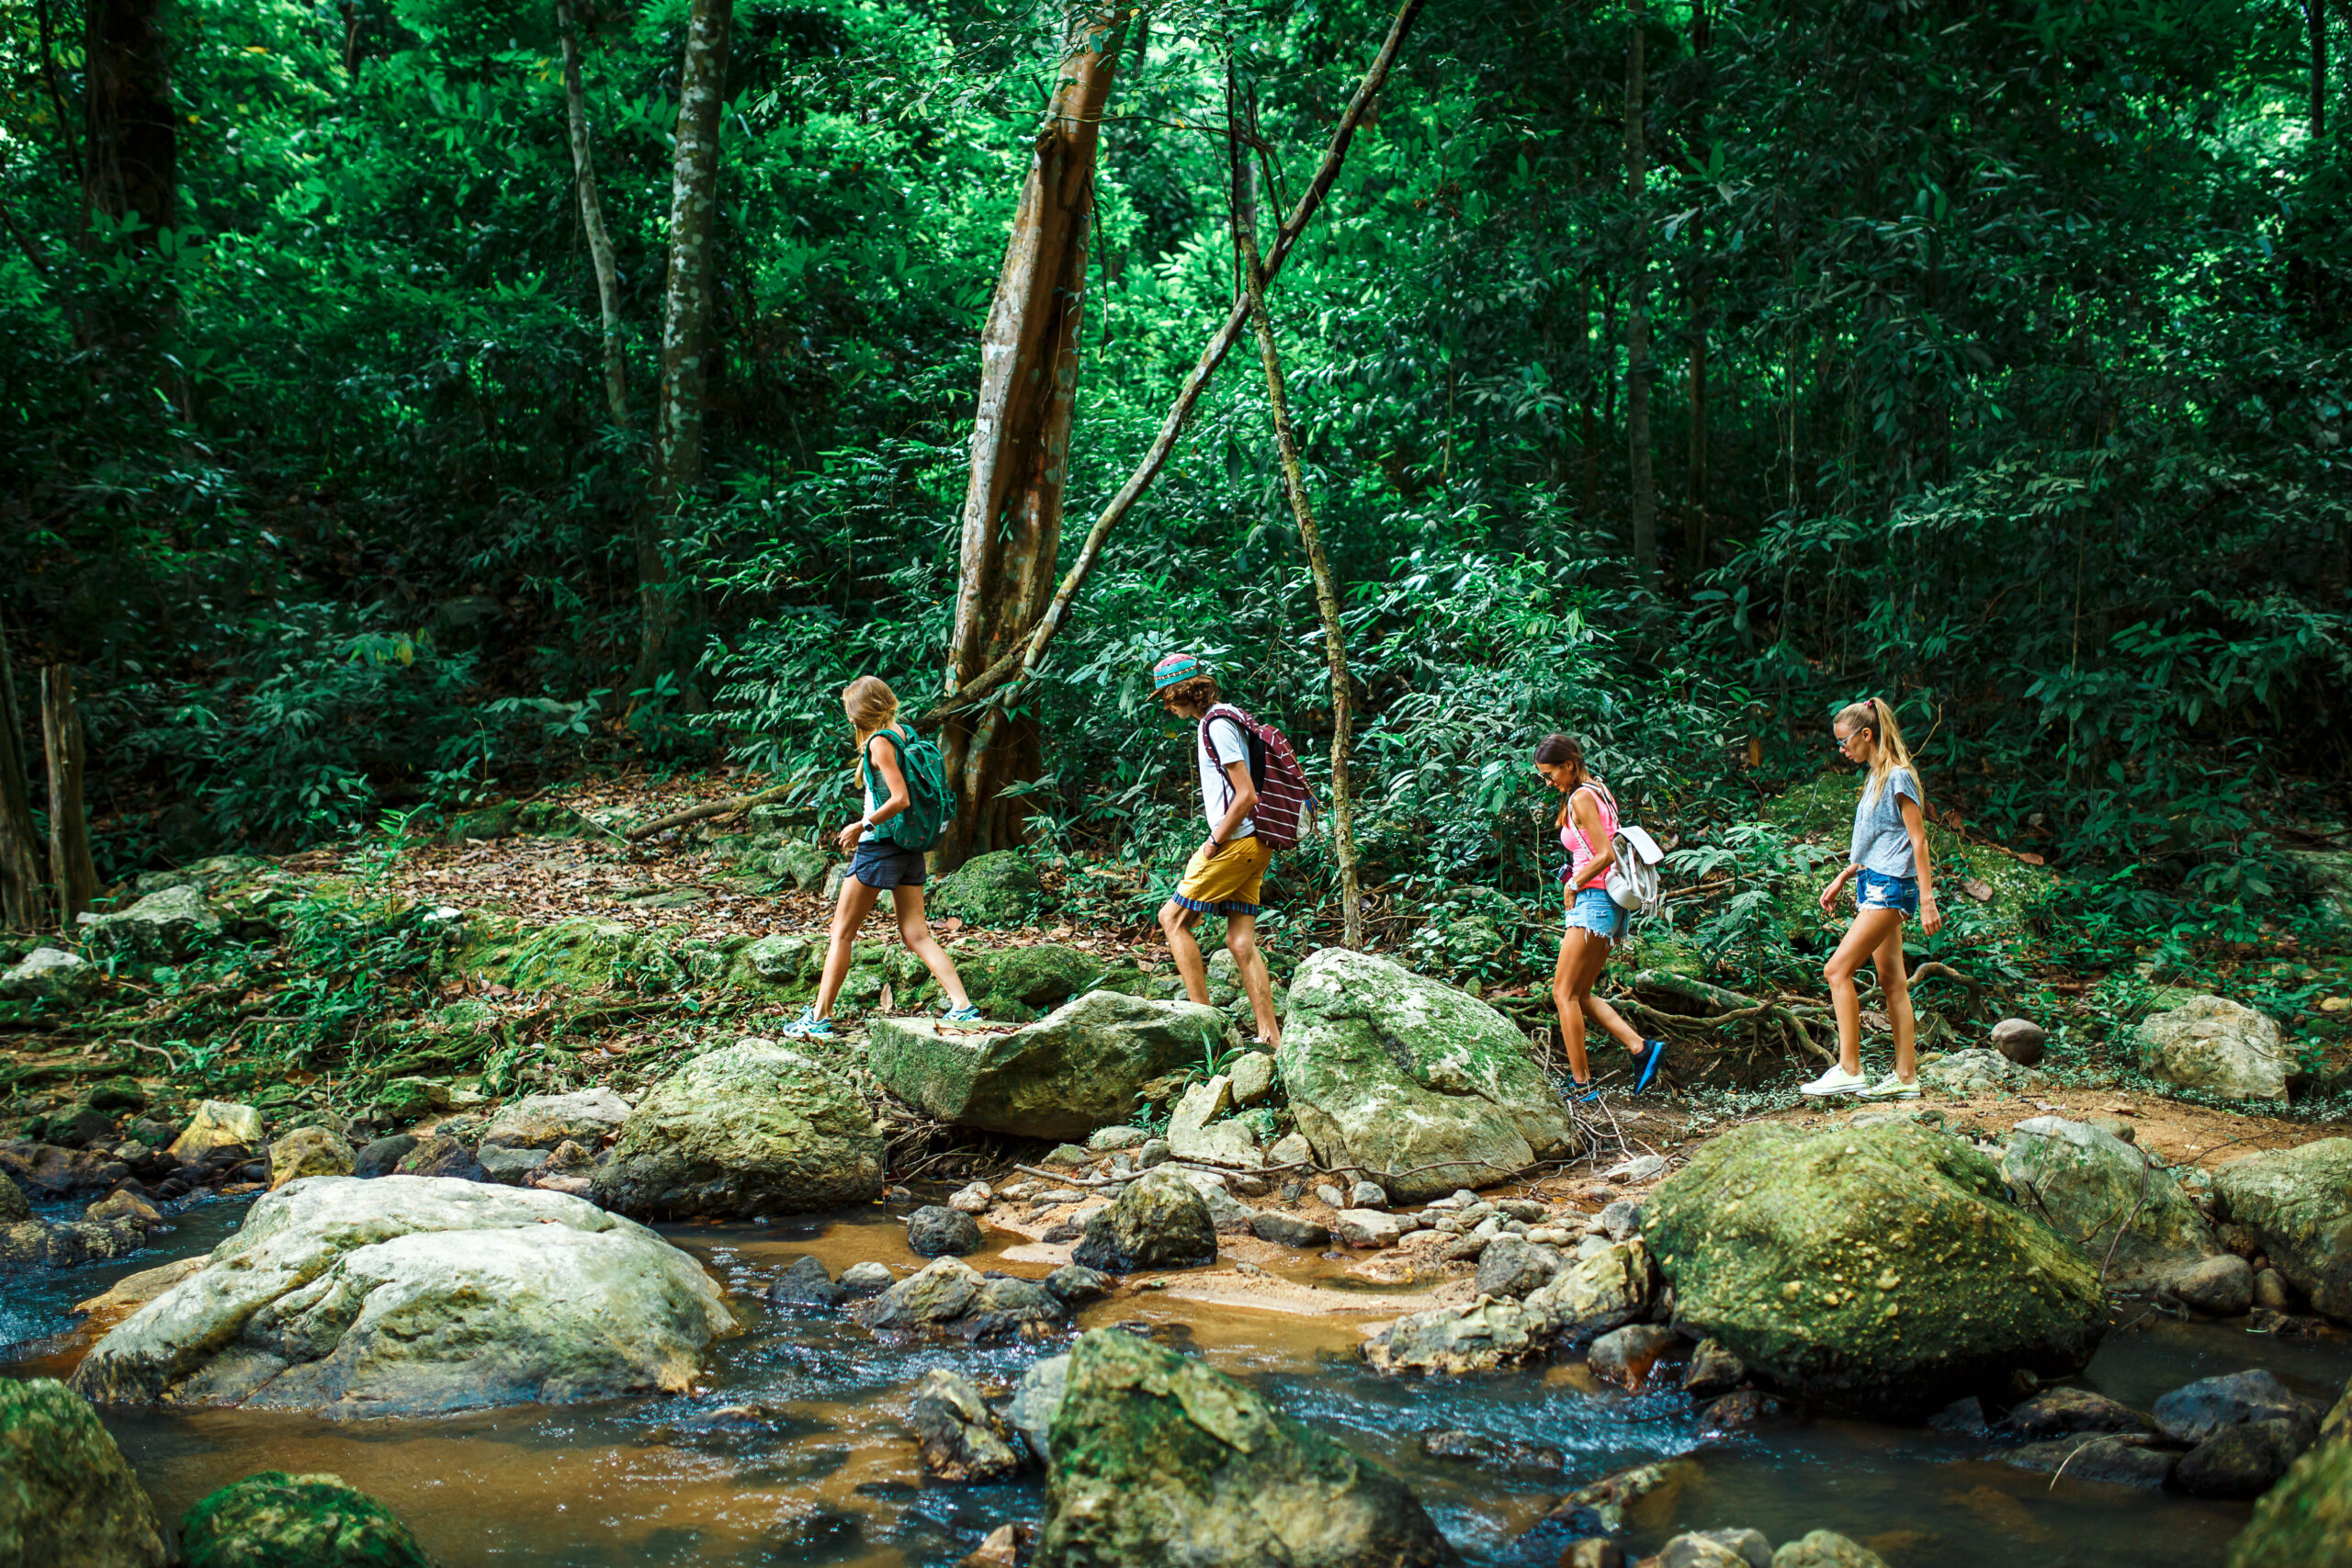 group of tourists hiking through deep jungle in thailand beside rocky stream